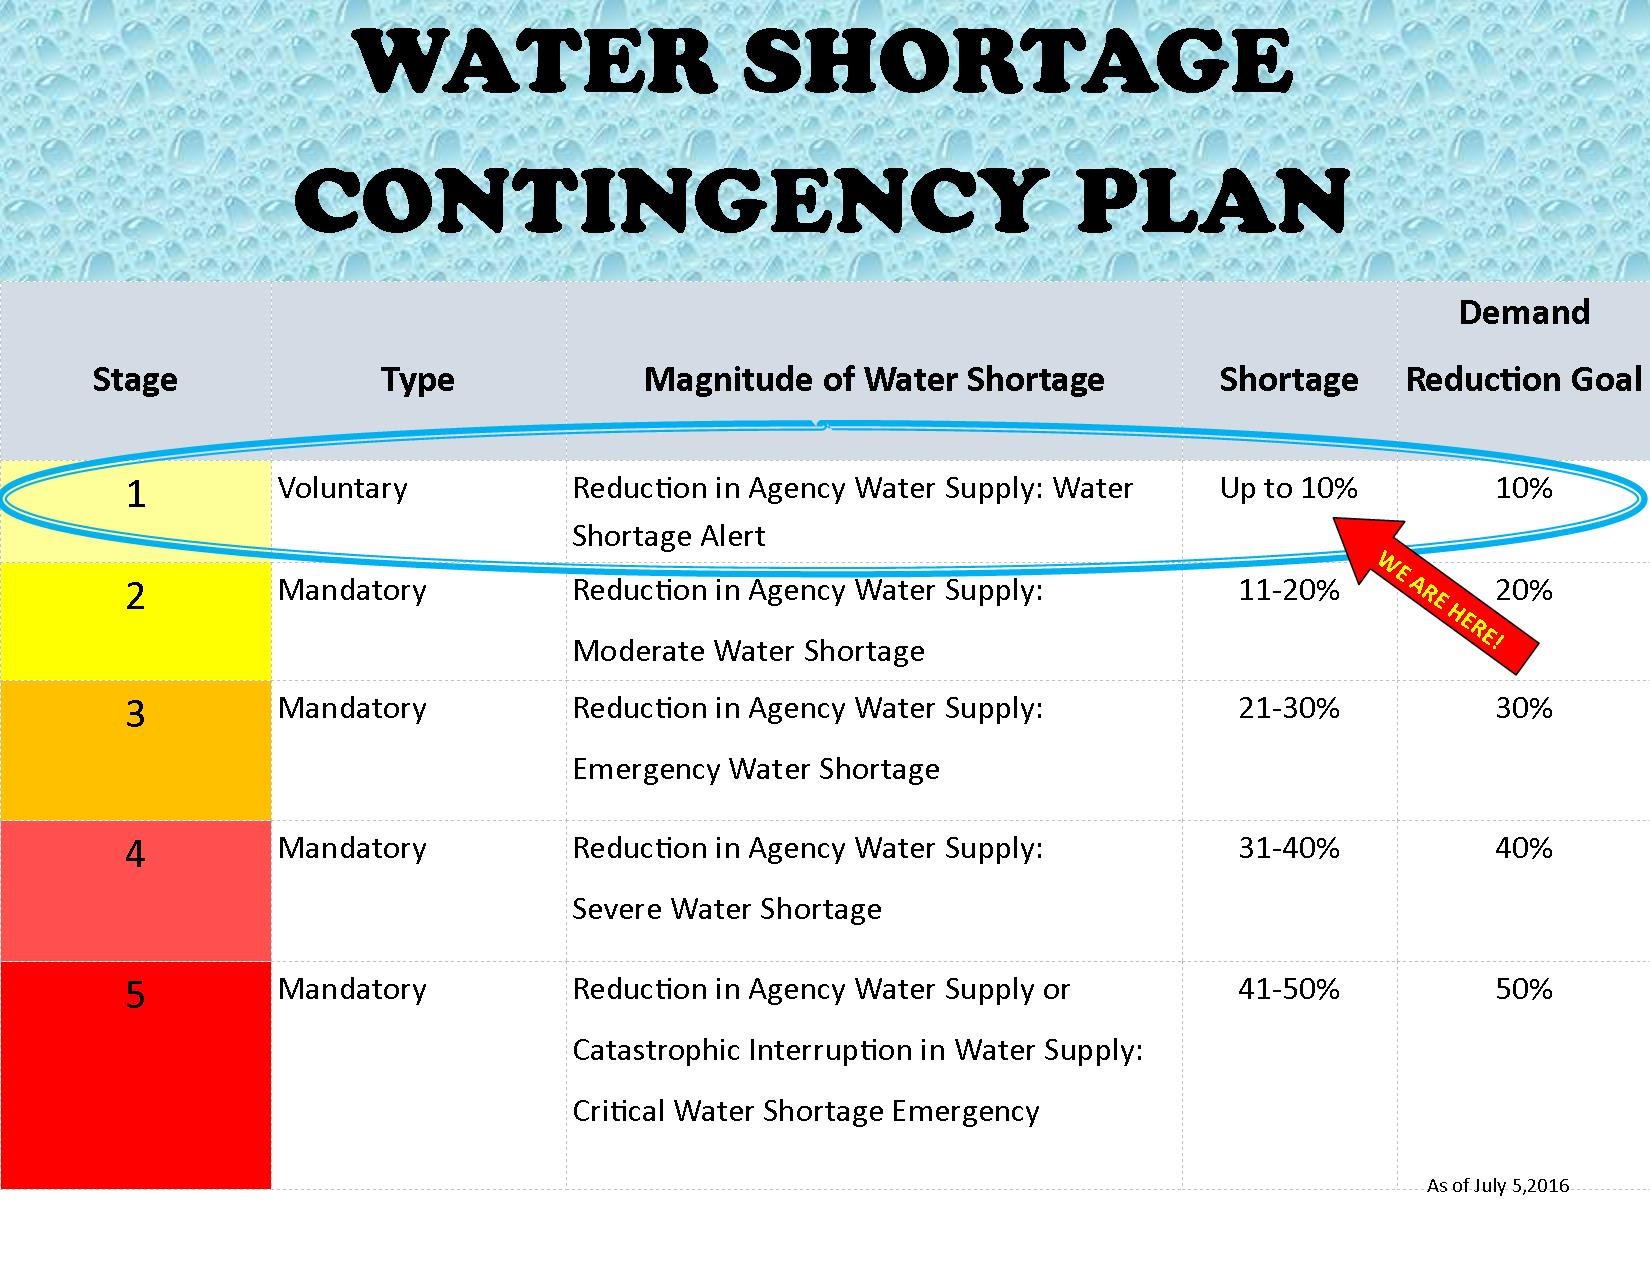 Water Shortage Contingency Plan.-Stage 1jpg.jpg